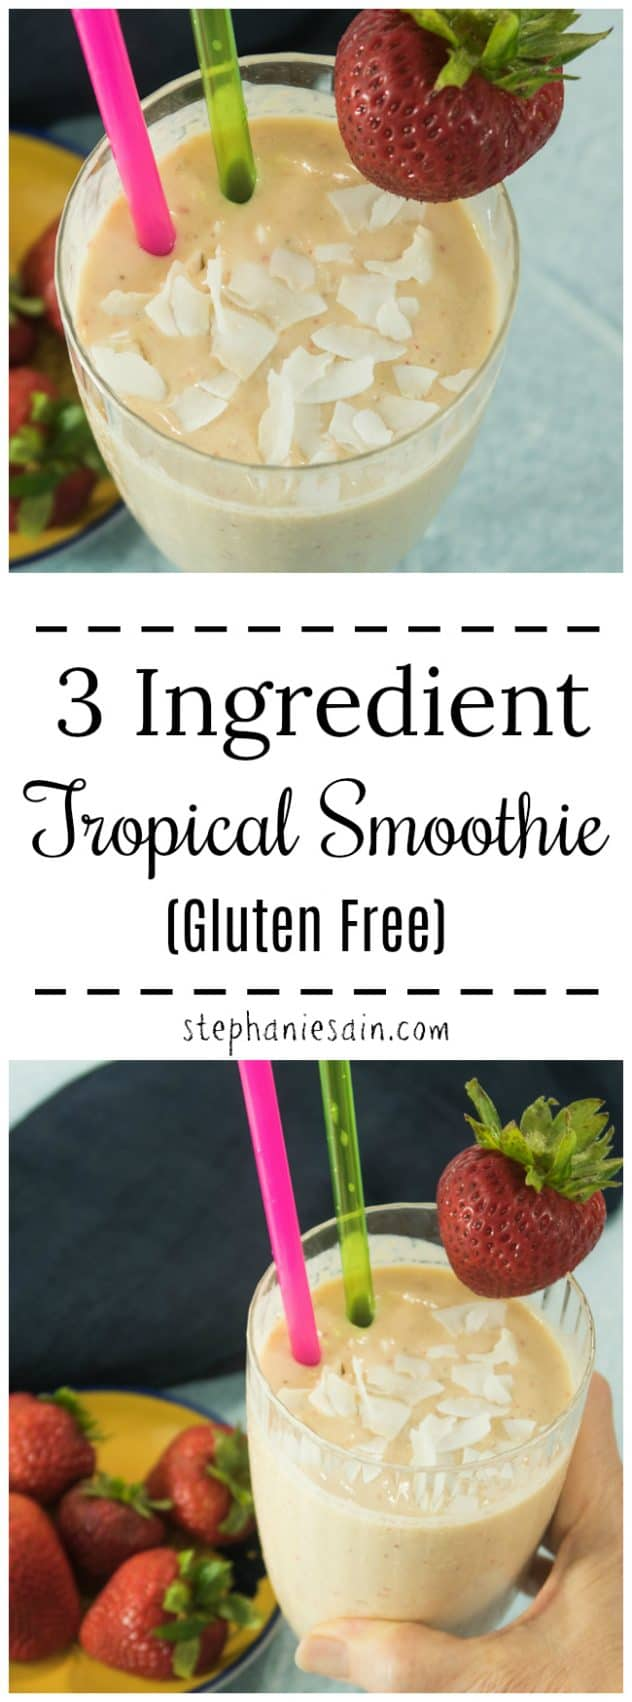 This 3 ingredient Tropical smoothie is super easy to make in under 5 minutes. Great for a quick breakfast or snack. Thick, creamy and tastes just like a milkshake. Healthy ingredients, no added refined sugars, & Gluten free.